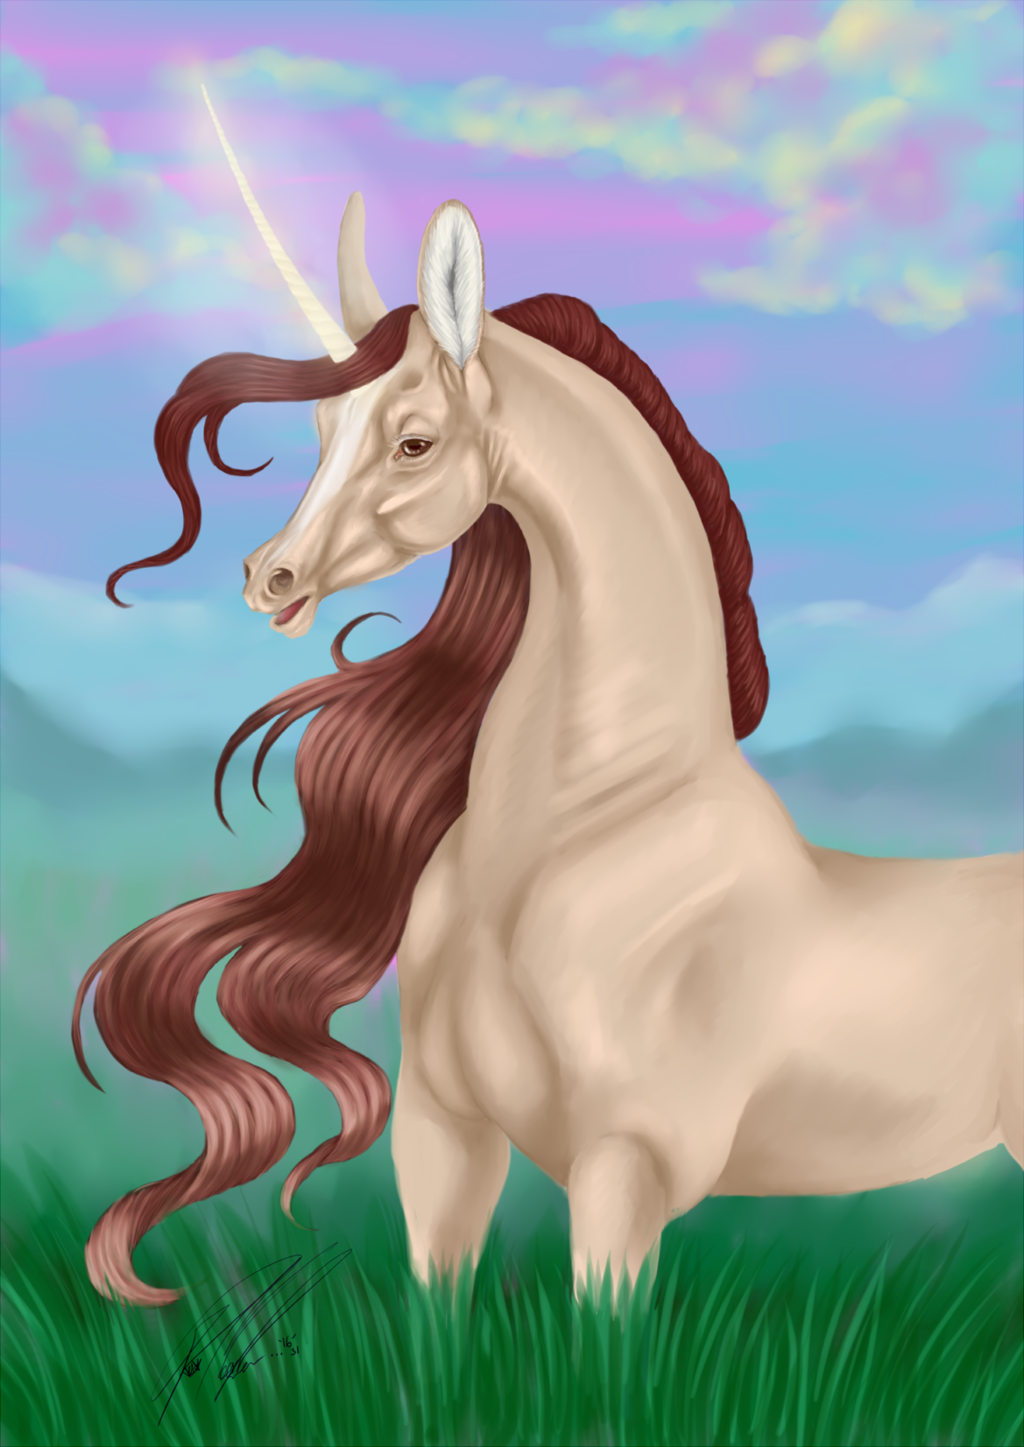 Unicorn for Kittysama